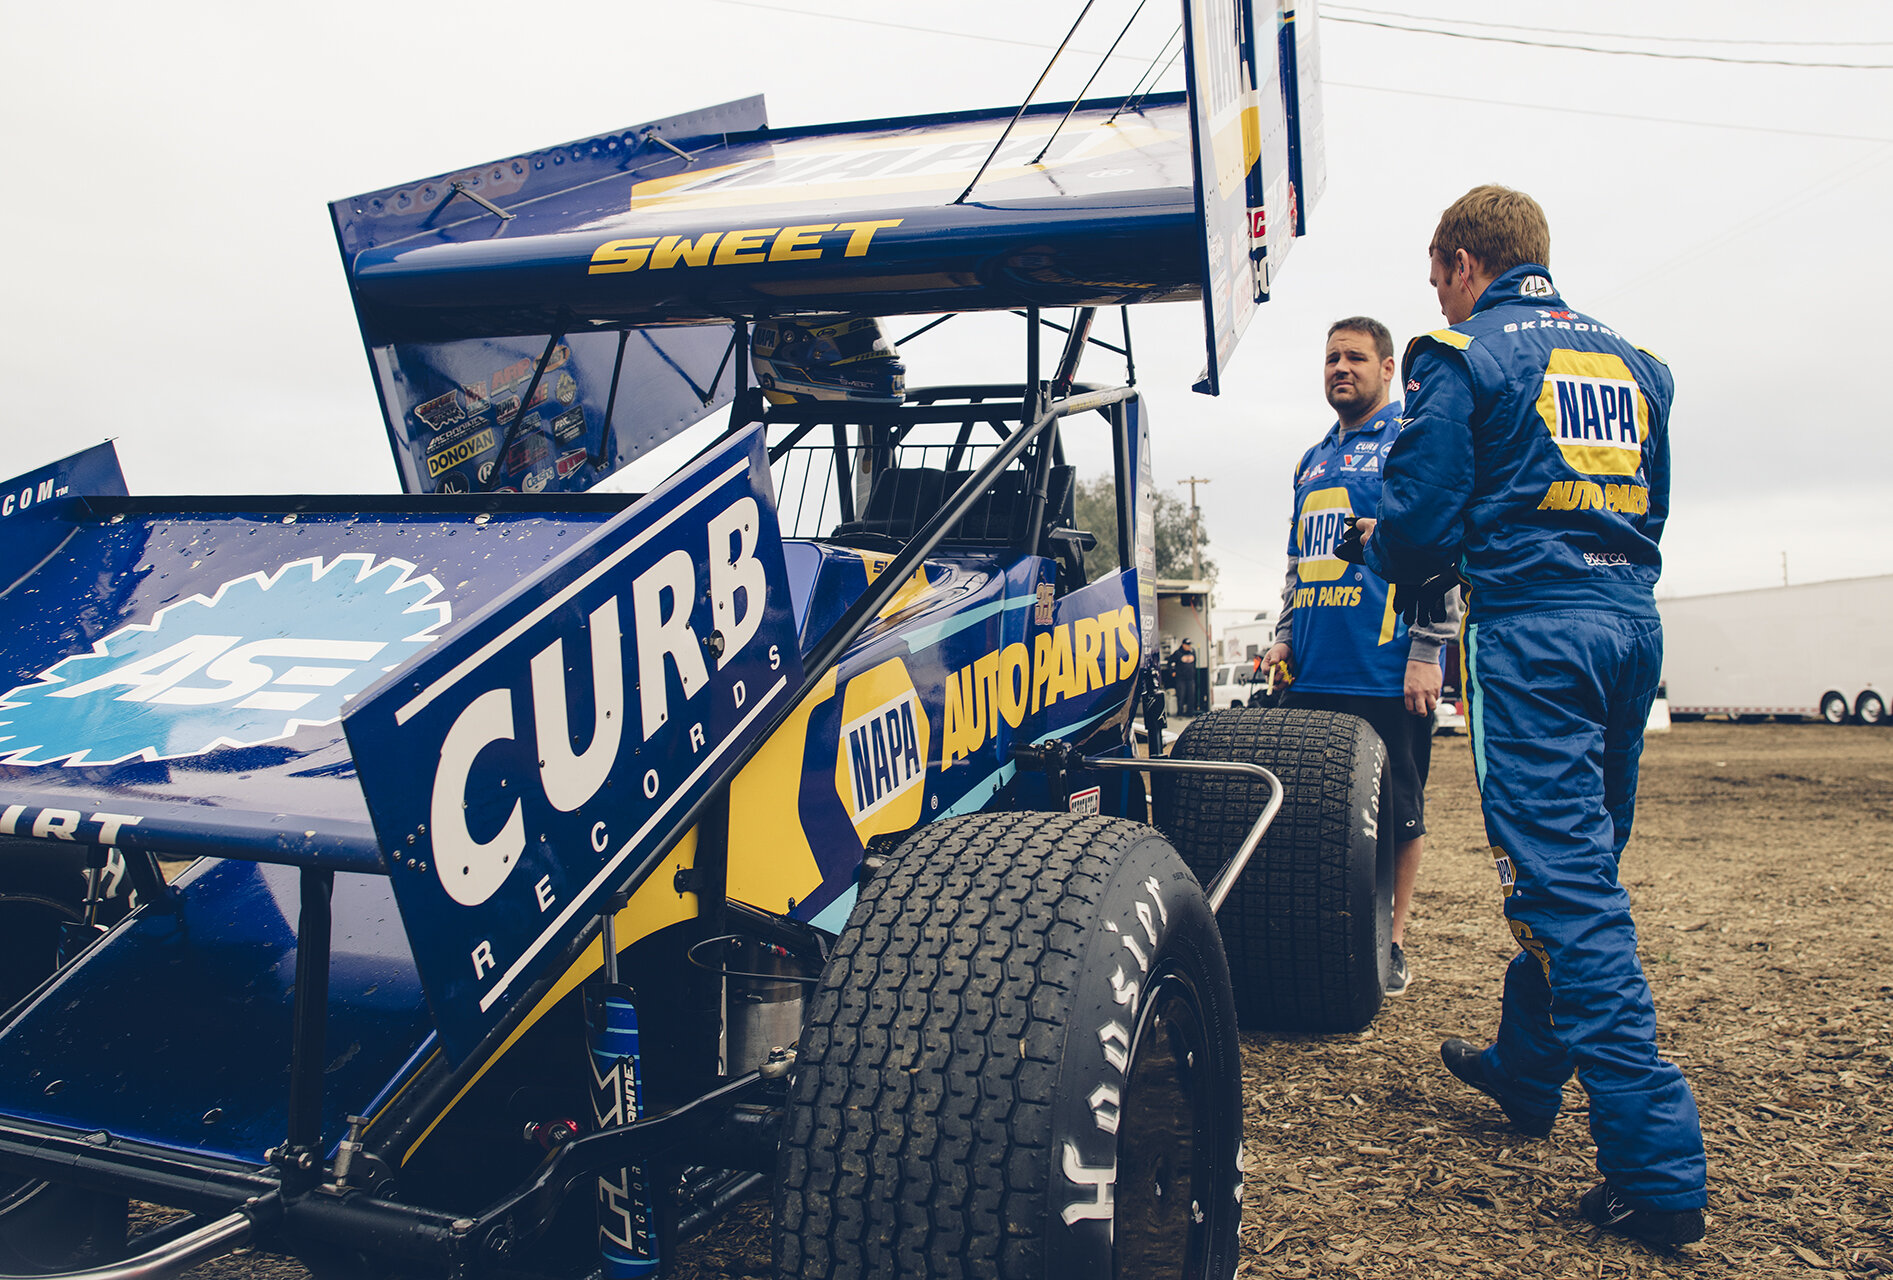 Ready for work: Sweet in the pits with crew chief Eric Prutzman at Thunderbowl Raceway in Tulare, Calif., March 2019.